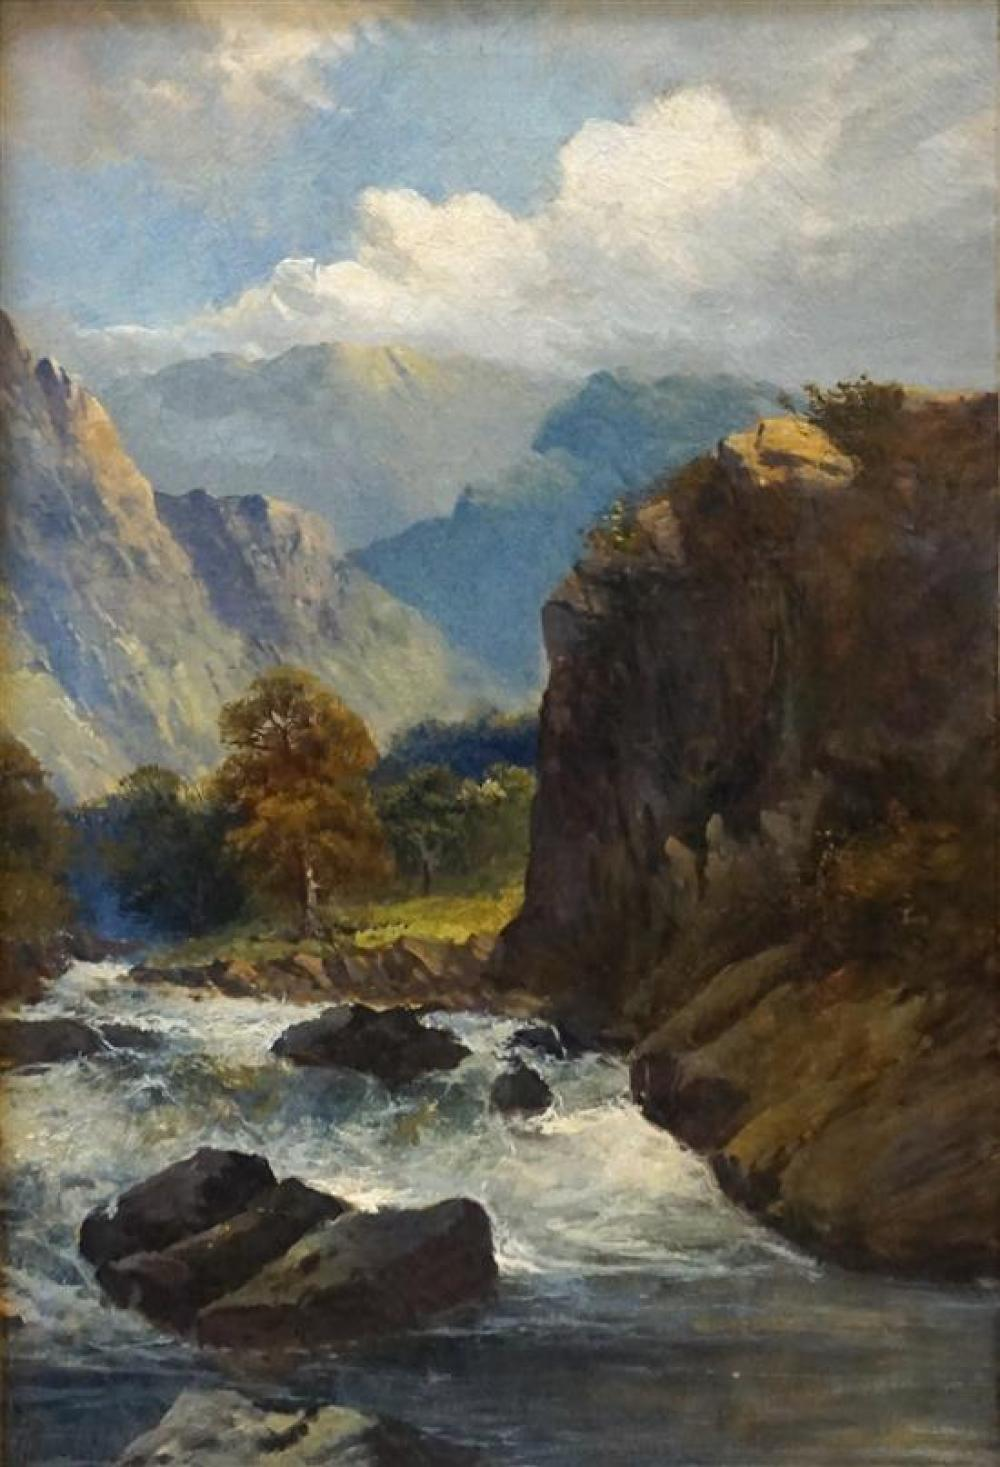 American 19th/20th Century School, River Landscape, Oil on Canvas, Frame: 37-1/2 x 27-1/4 in